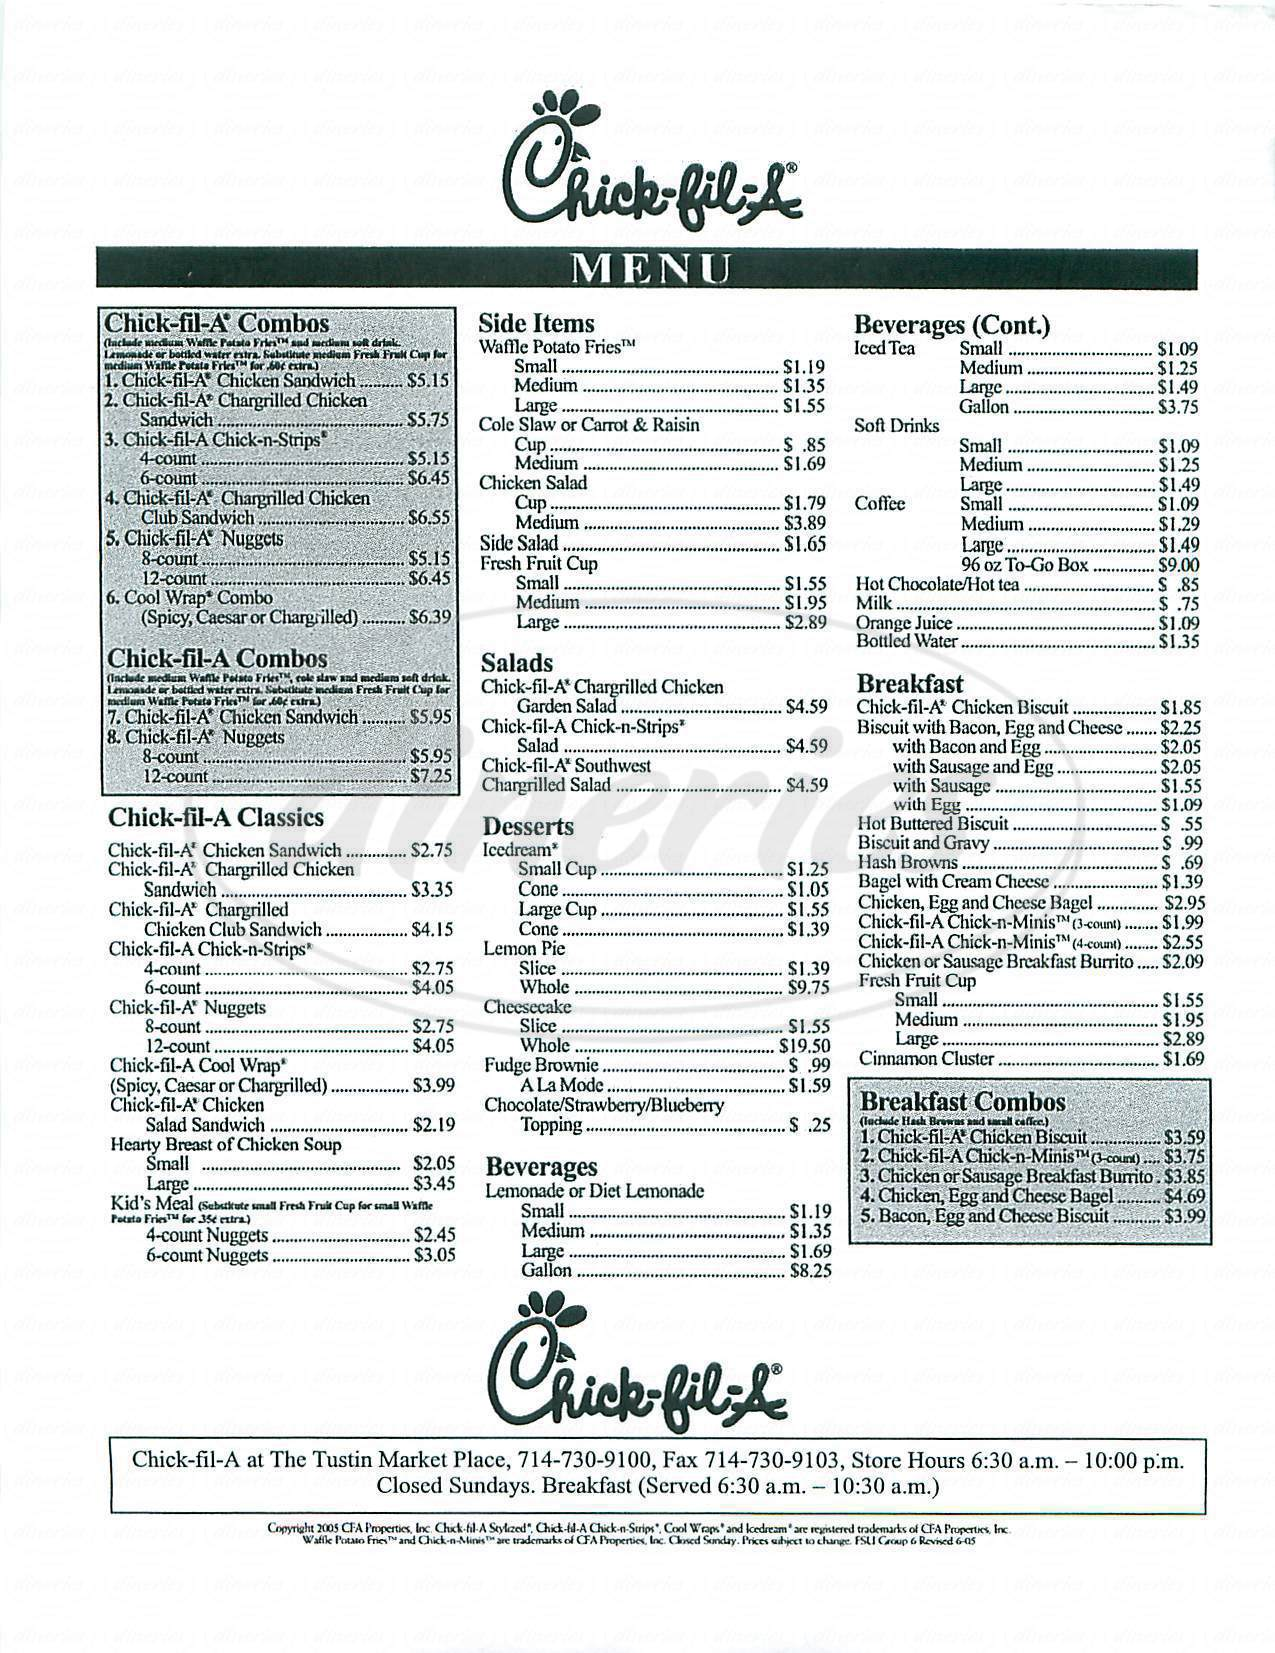 situational analysis chickfila The signature product of chick-fil-a is the chicken sandwich chicken consists of over 20 different seasonings company environment situational analysis history.